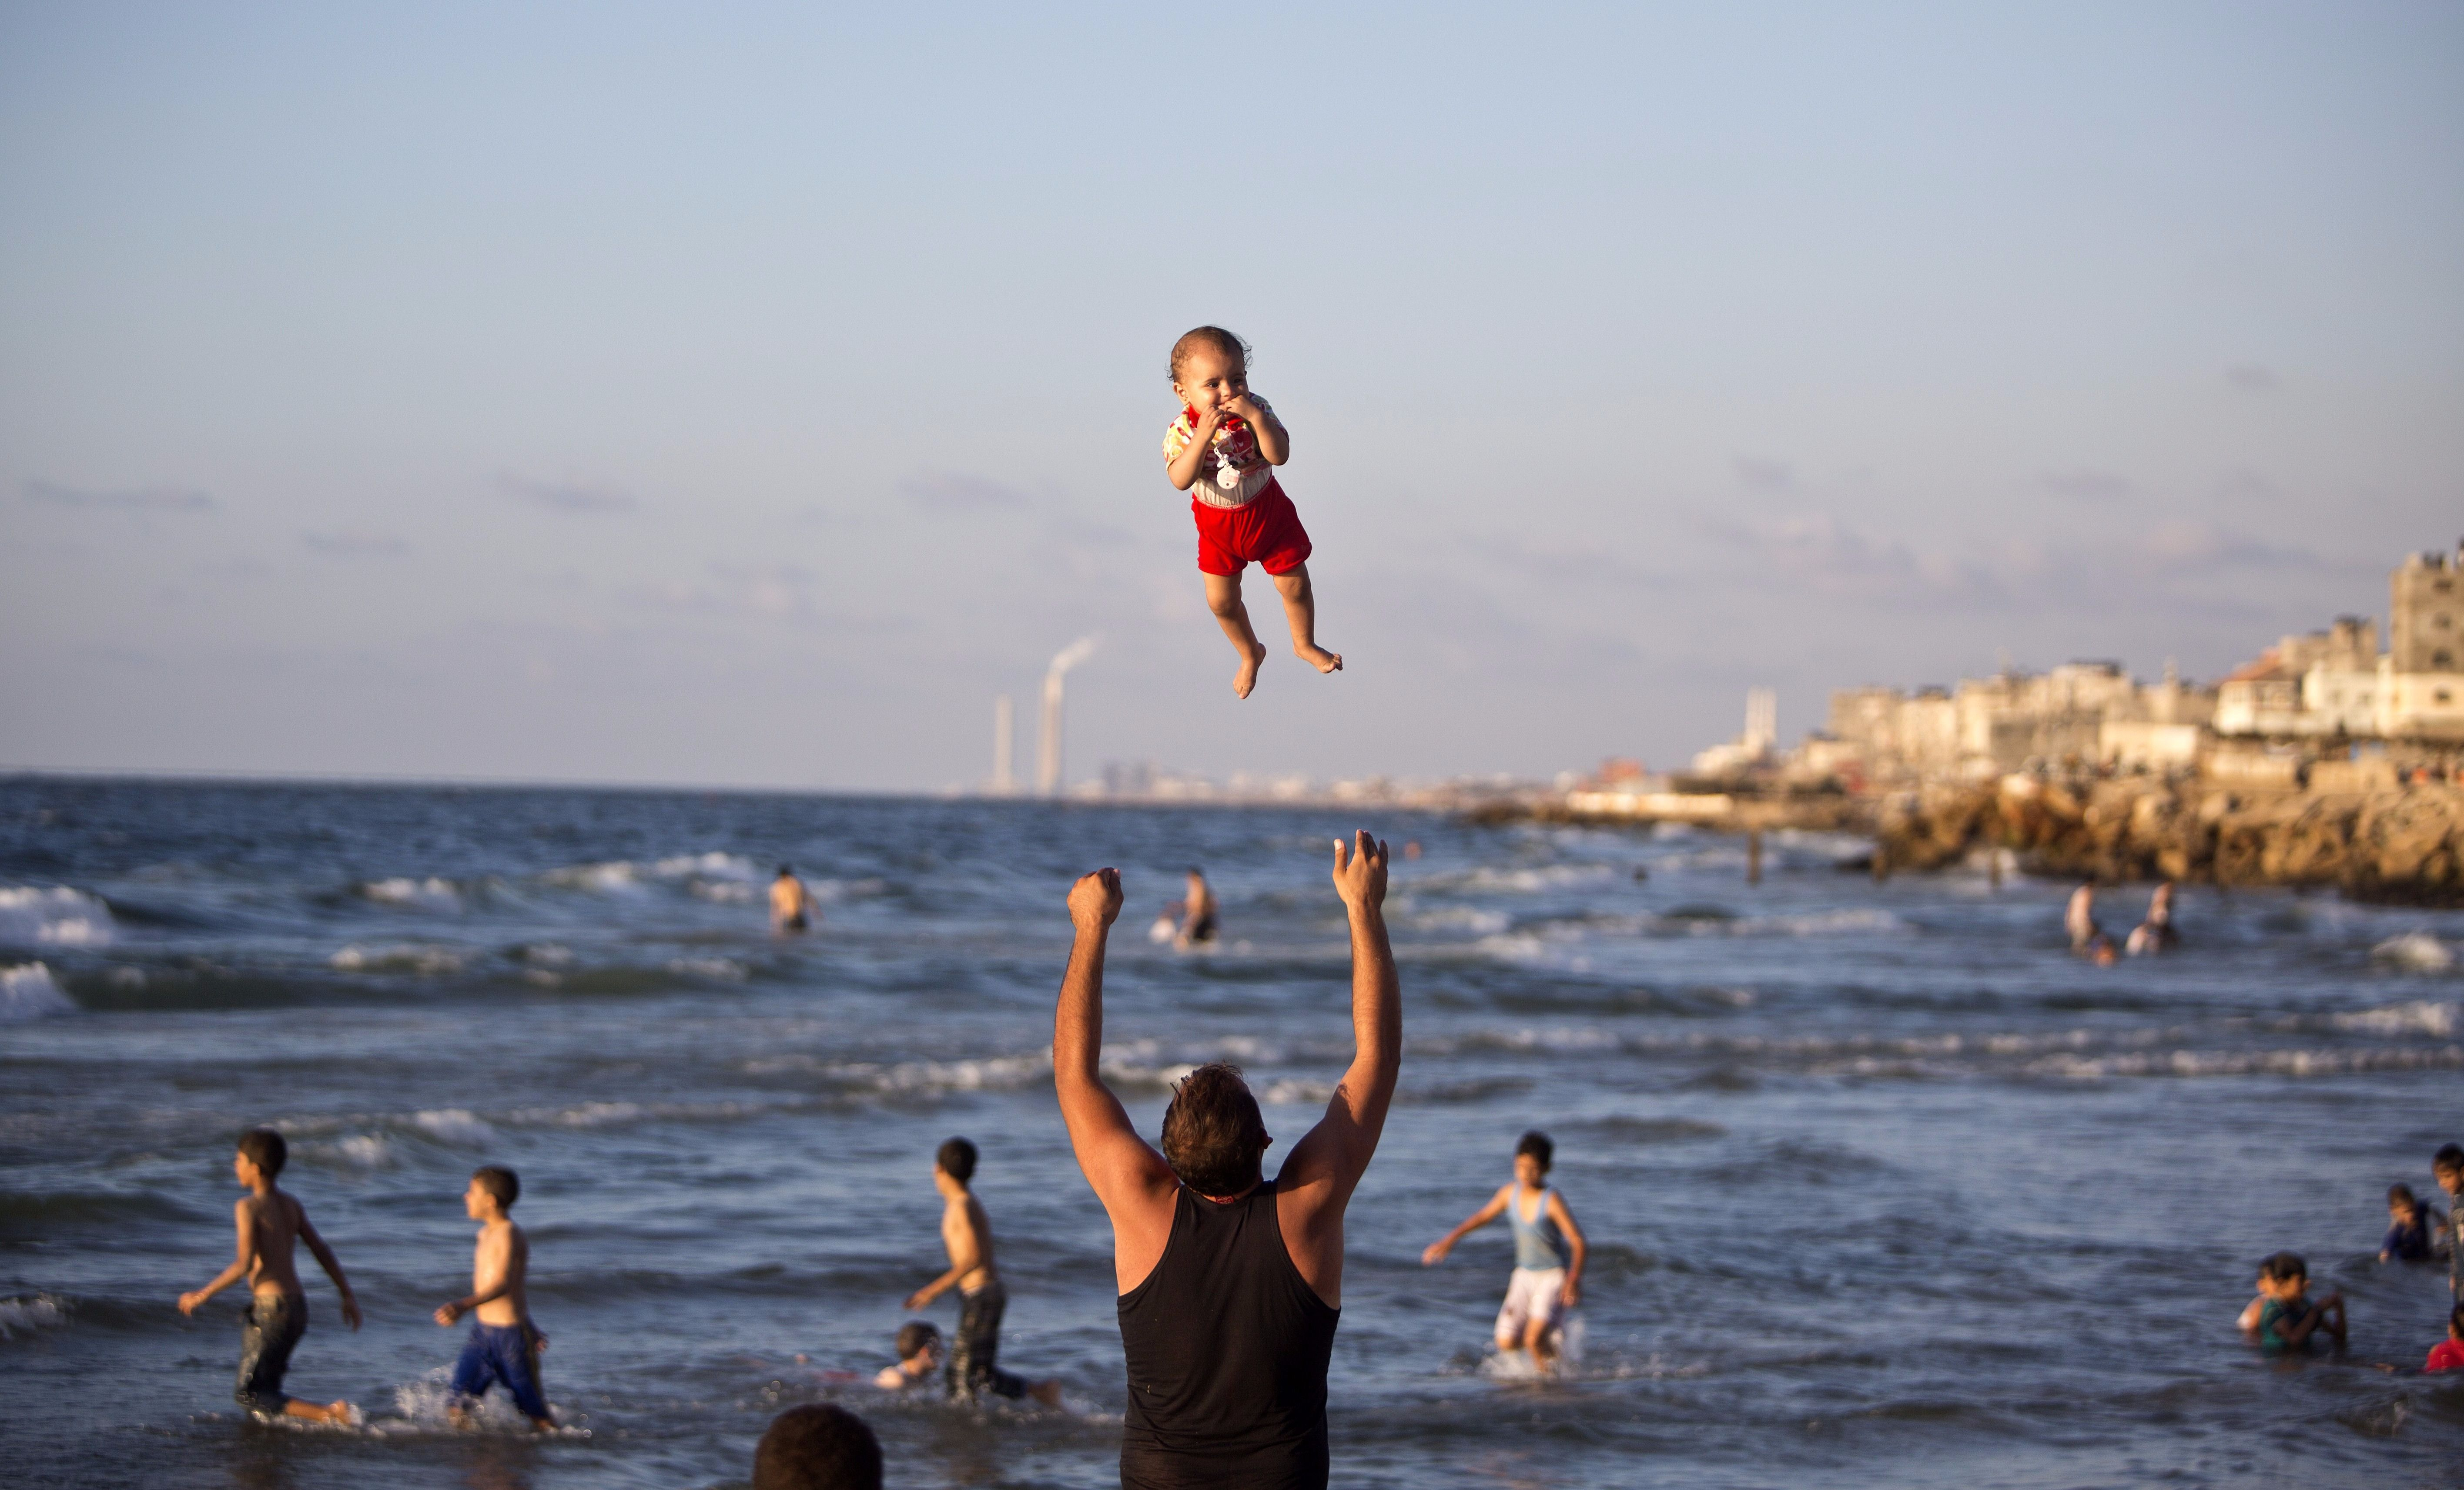 A Palestinian man plays with his baby on a beach in the Gaza Strip.